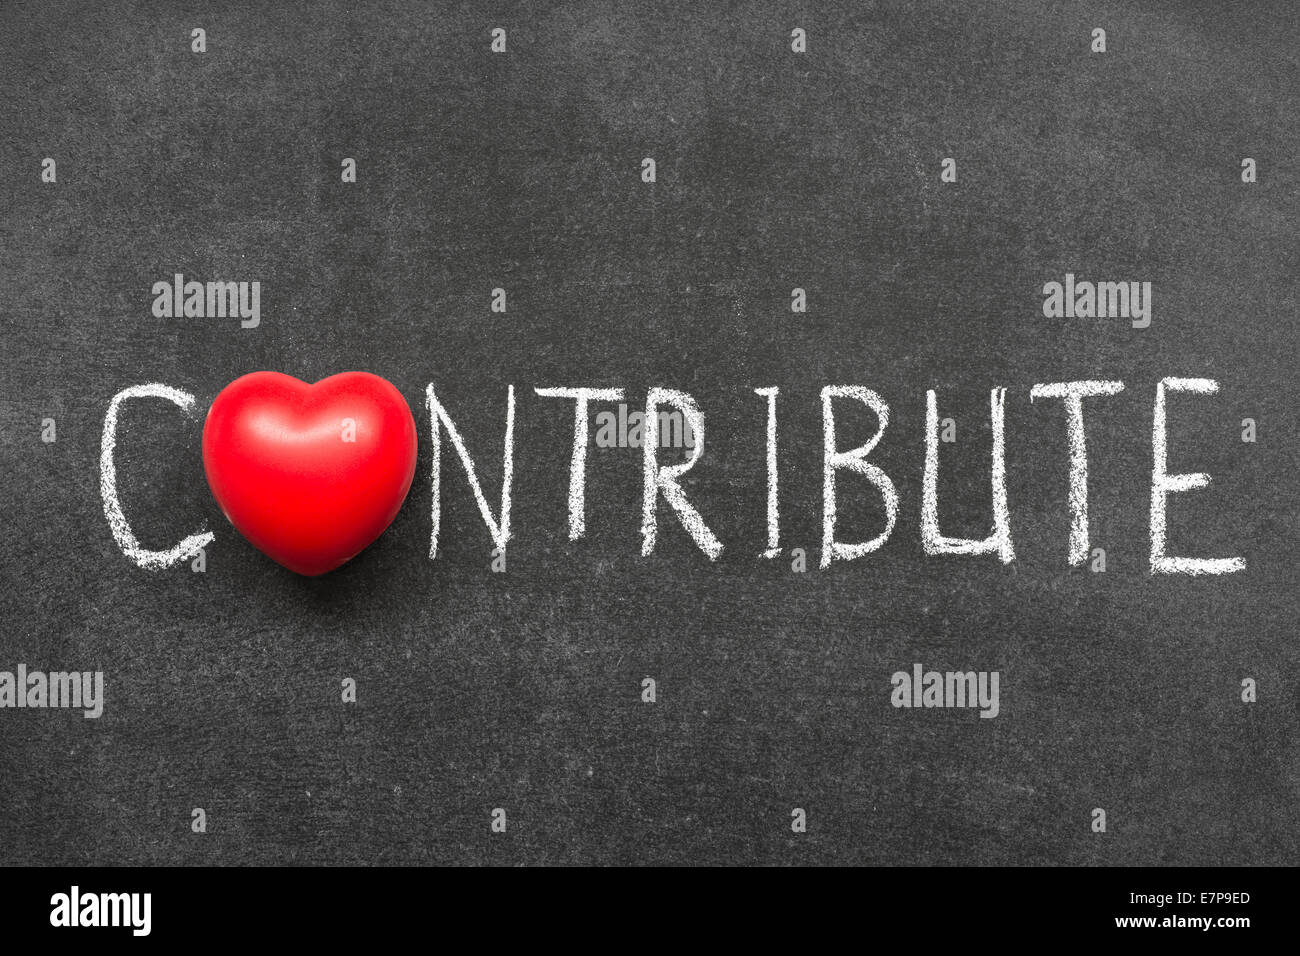 contribute word handwritten on chalkboard with heart symbol instead of O - Stock Image